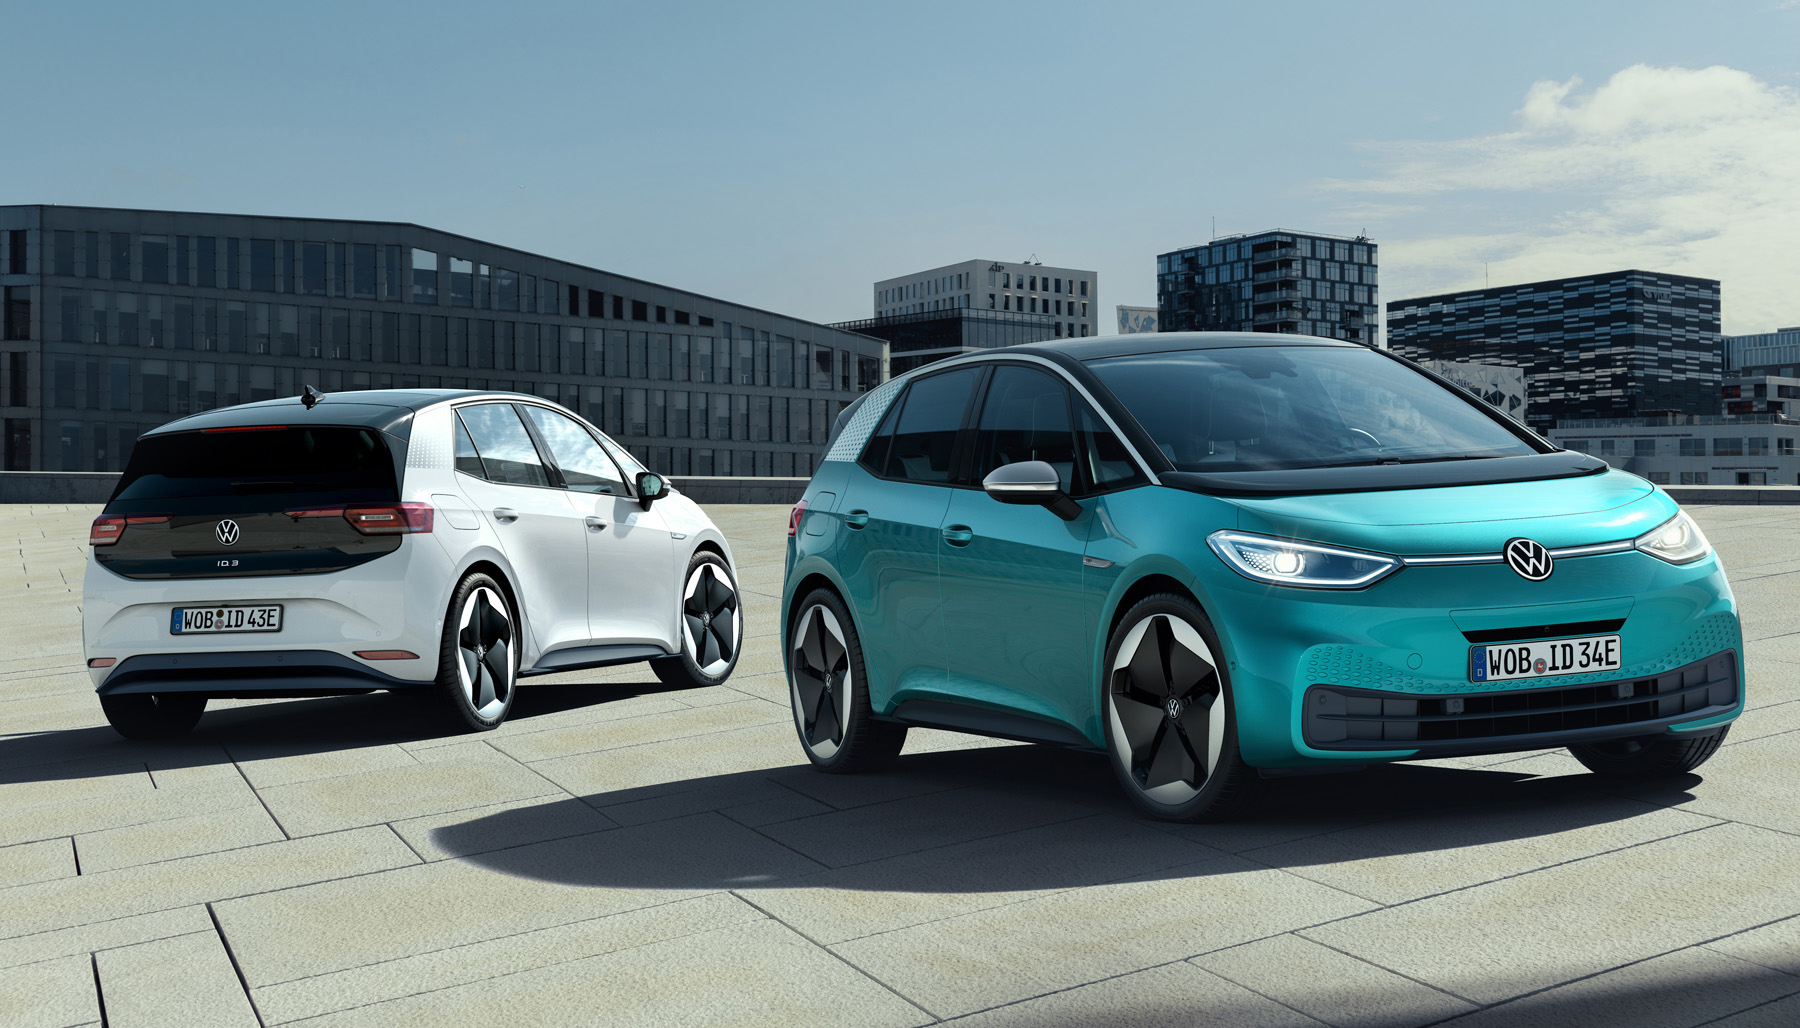 Literally a couple days after introducing its all-new ID.3 electric hatchback (see the gallery and the video), Volkswagen AG announced it would be bringing out a performance version called 'R'.